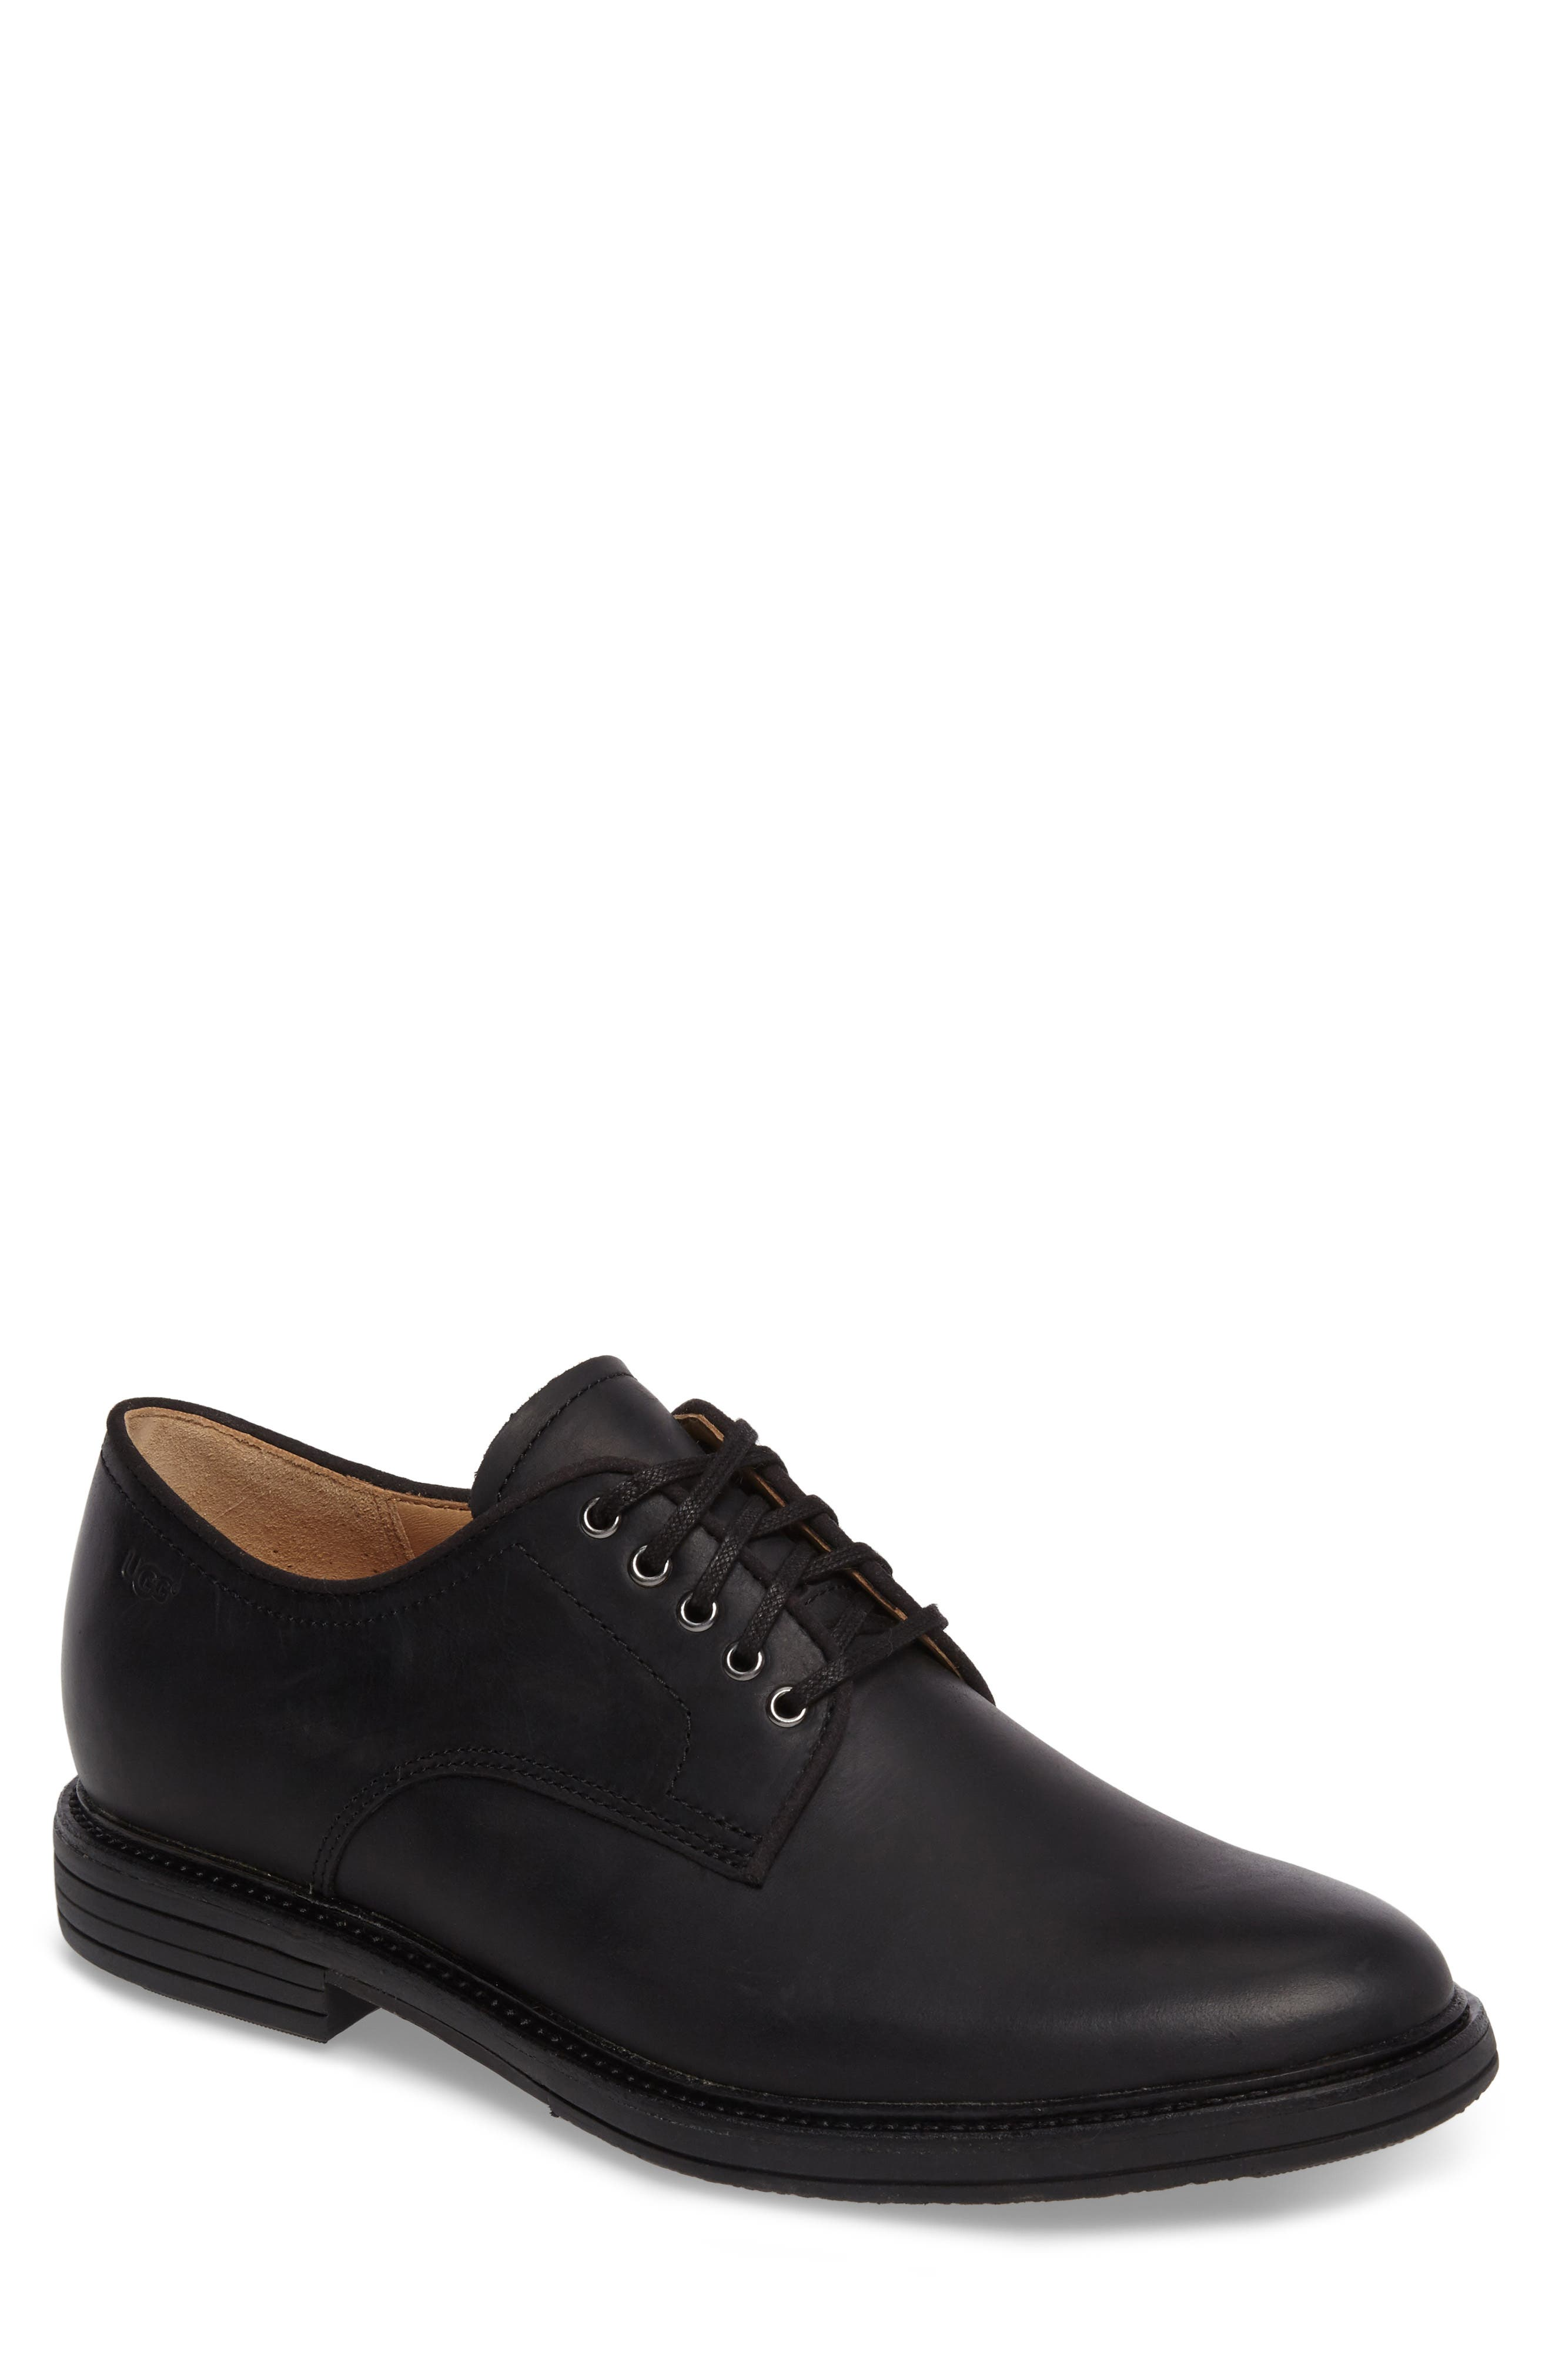 Jovin Buck Shoe,                         Main,                         color, Black